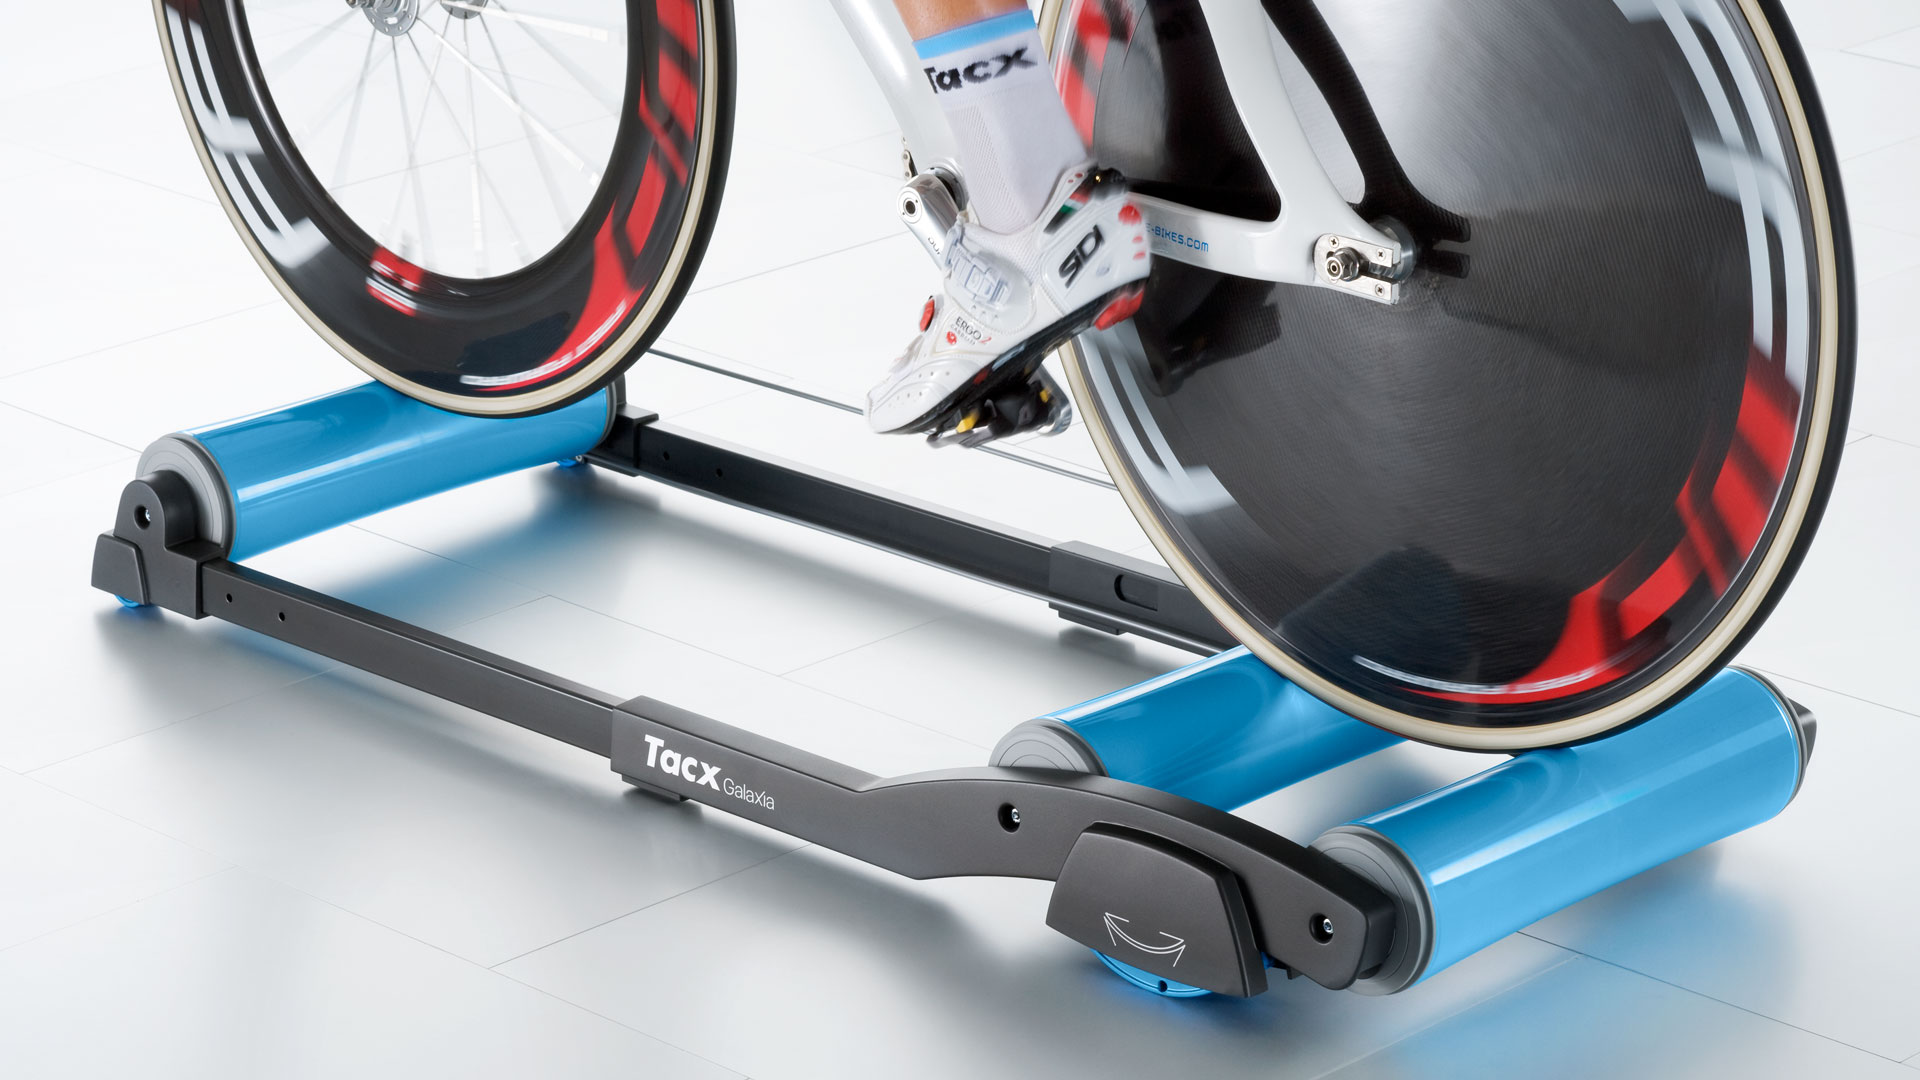 Best rollers to add variety to your indoor cycling - Cycling Weekly